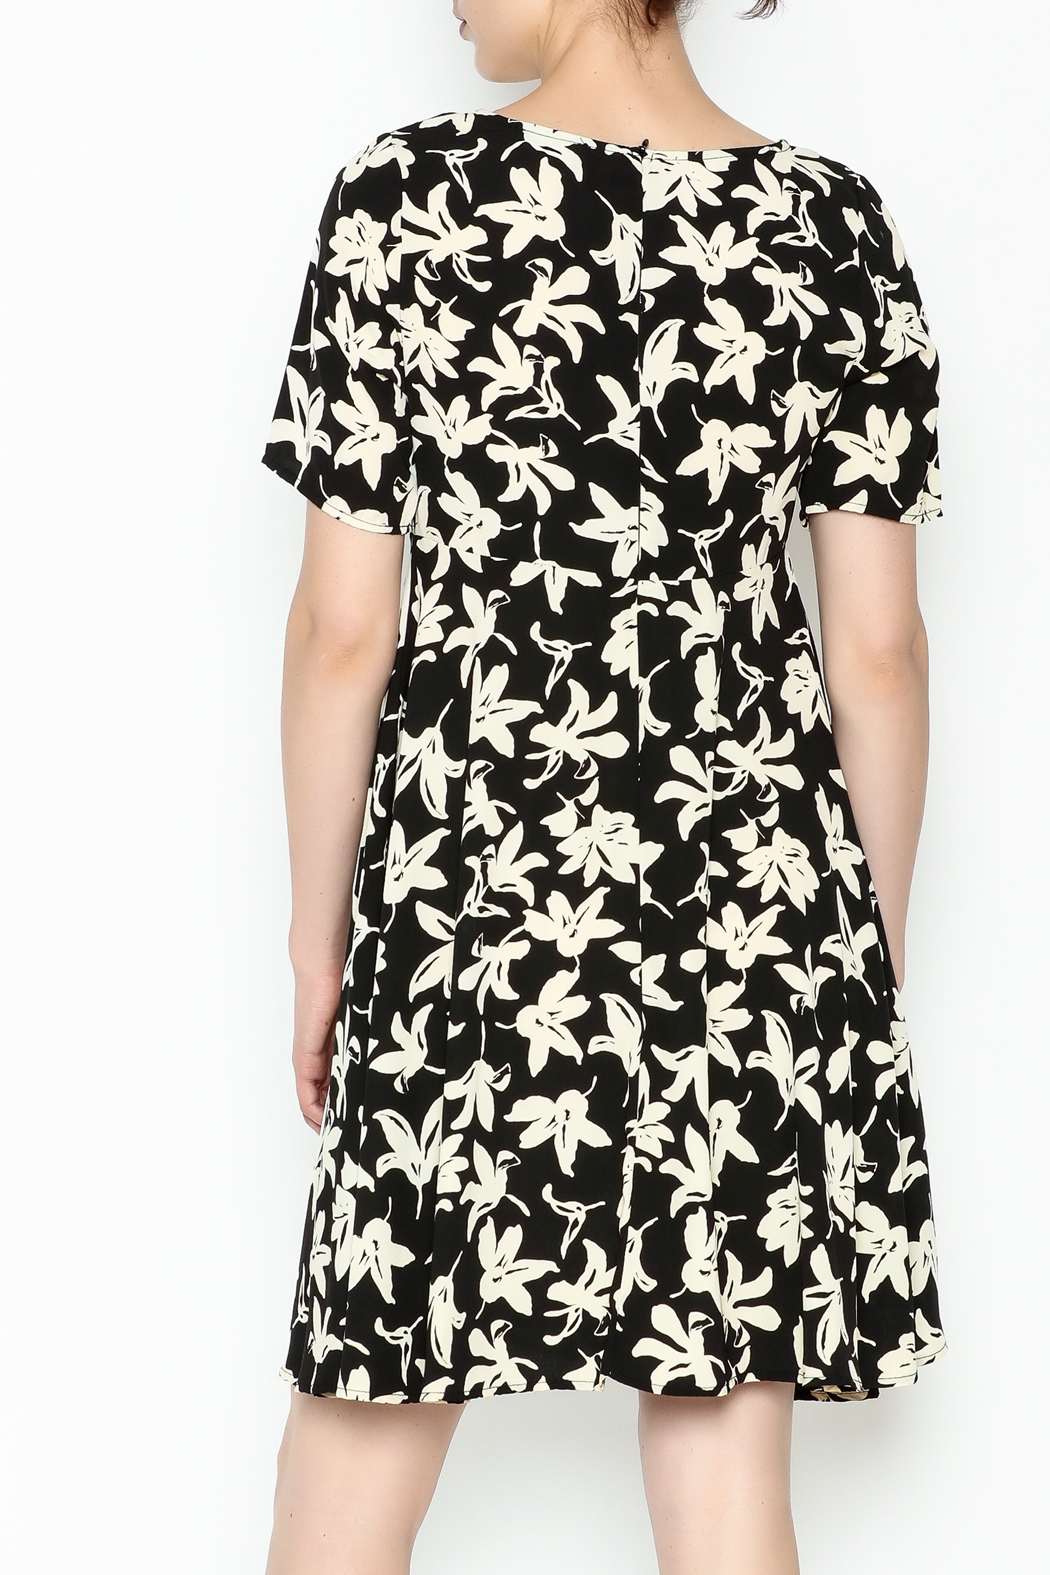 Everly Terri Floral Shift Dress - Back Cropped Image